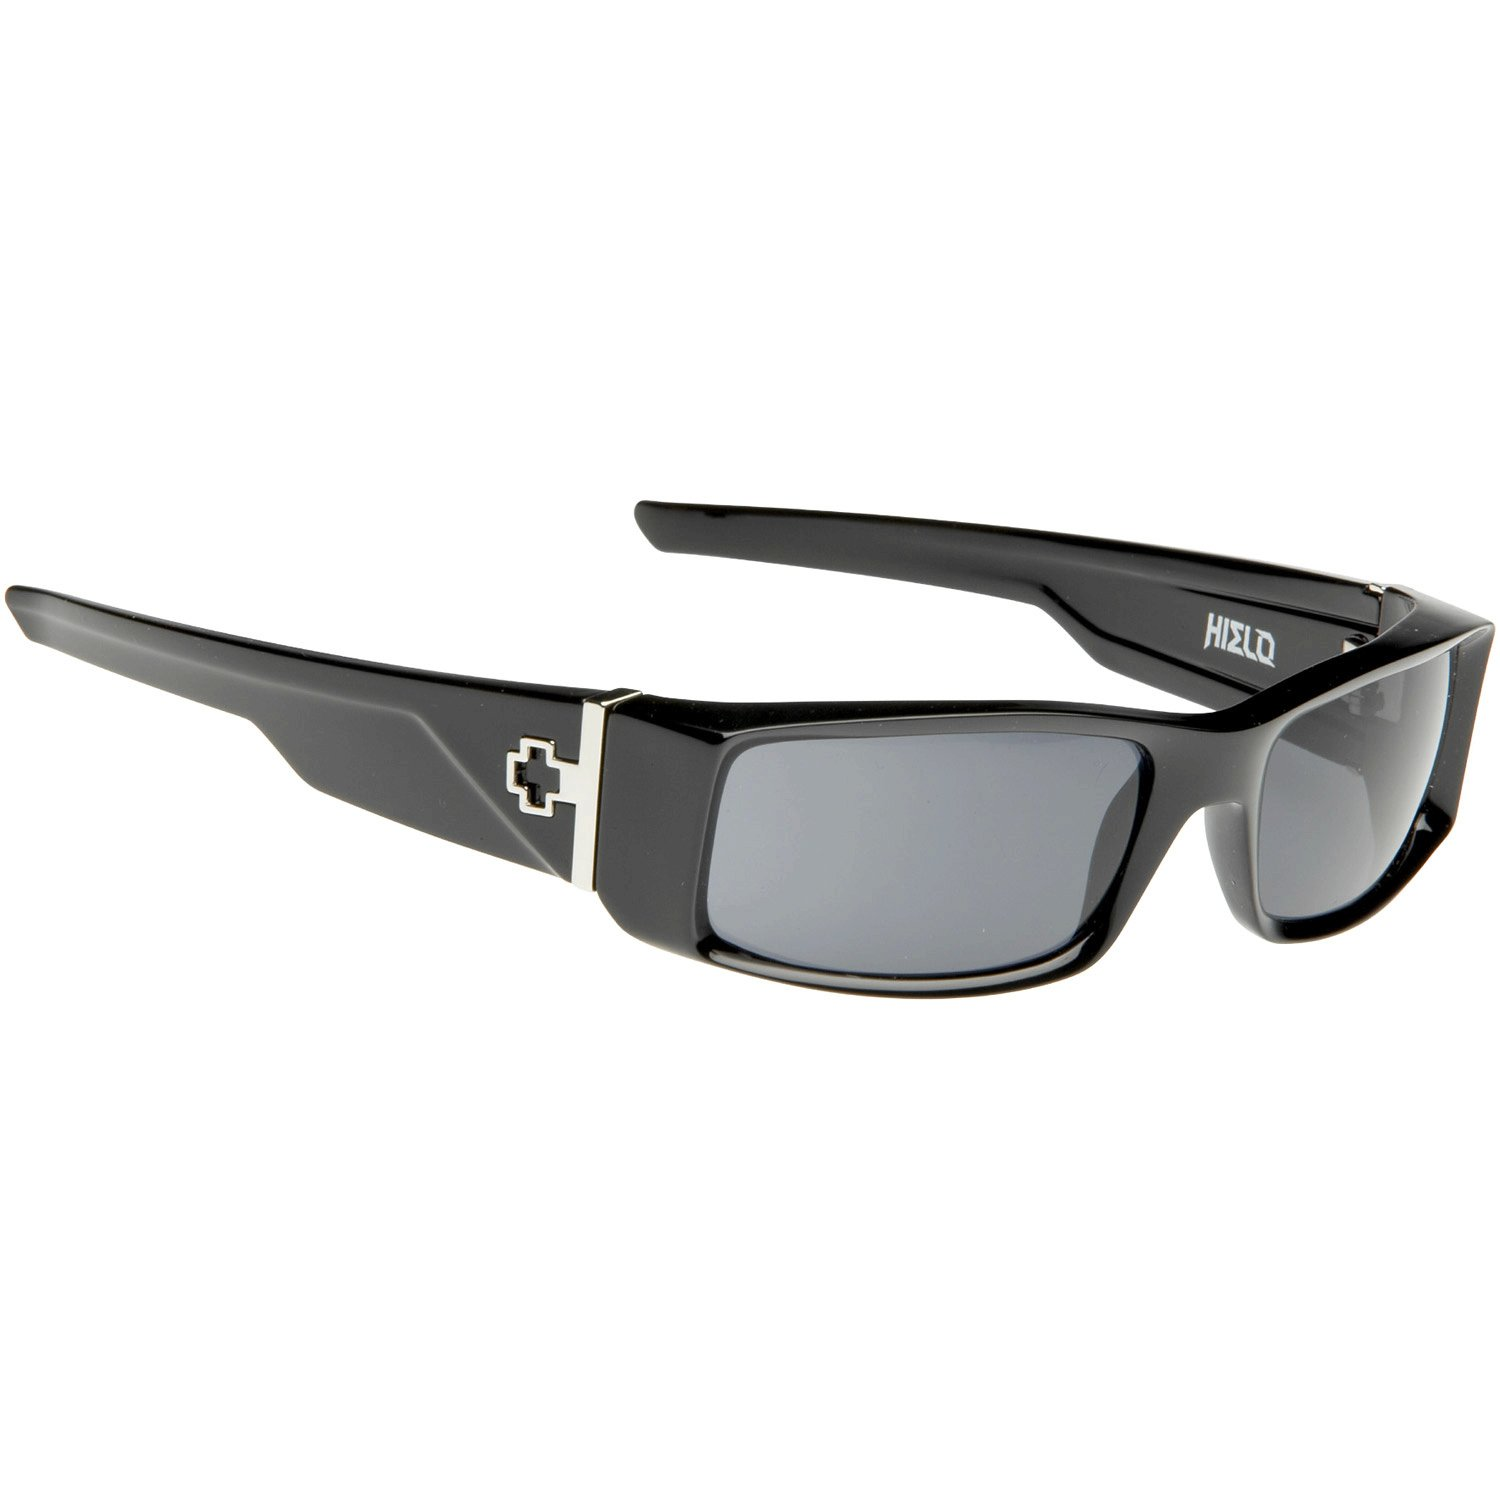 58e4cbd283 Amazon.com  Spy Optic - Spy Sunglasses - Hielo Black Polarized - Black -  One Size  Clothing